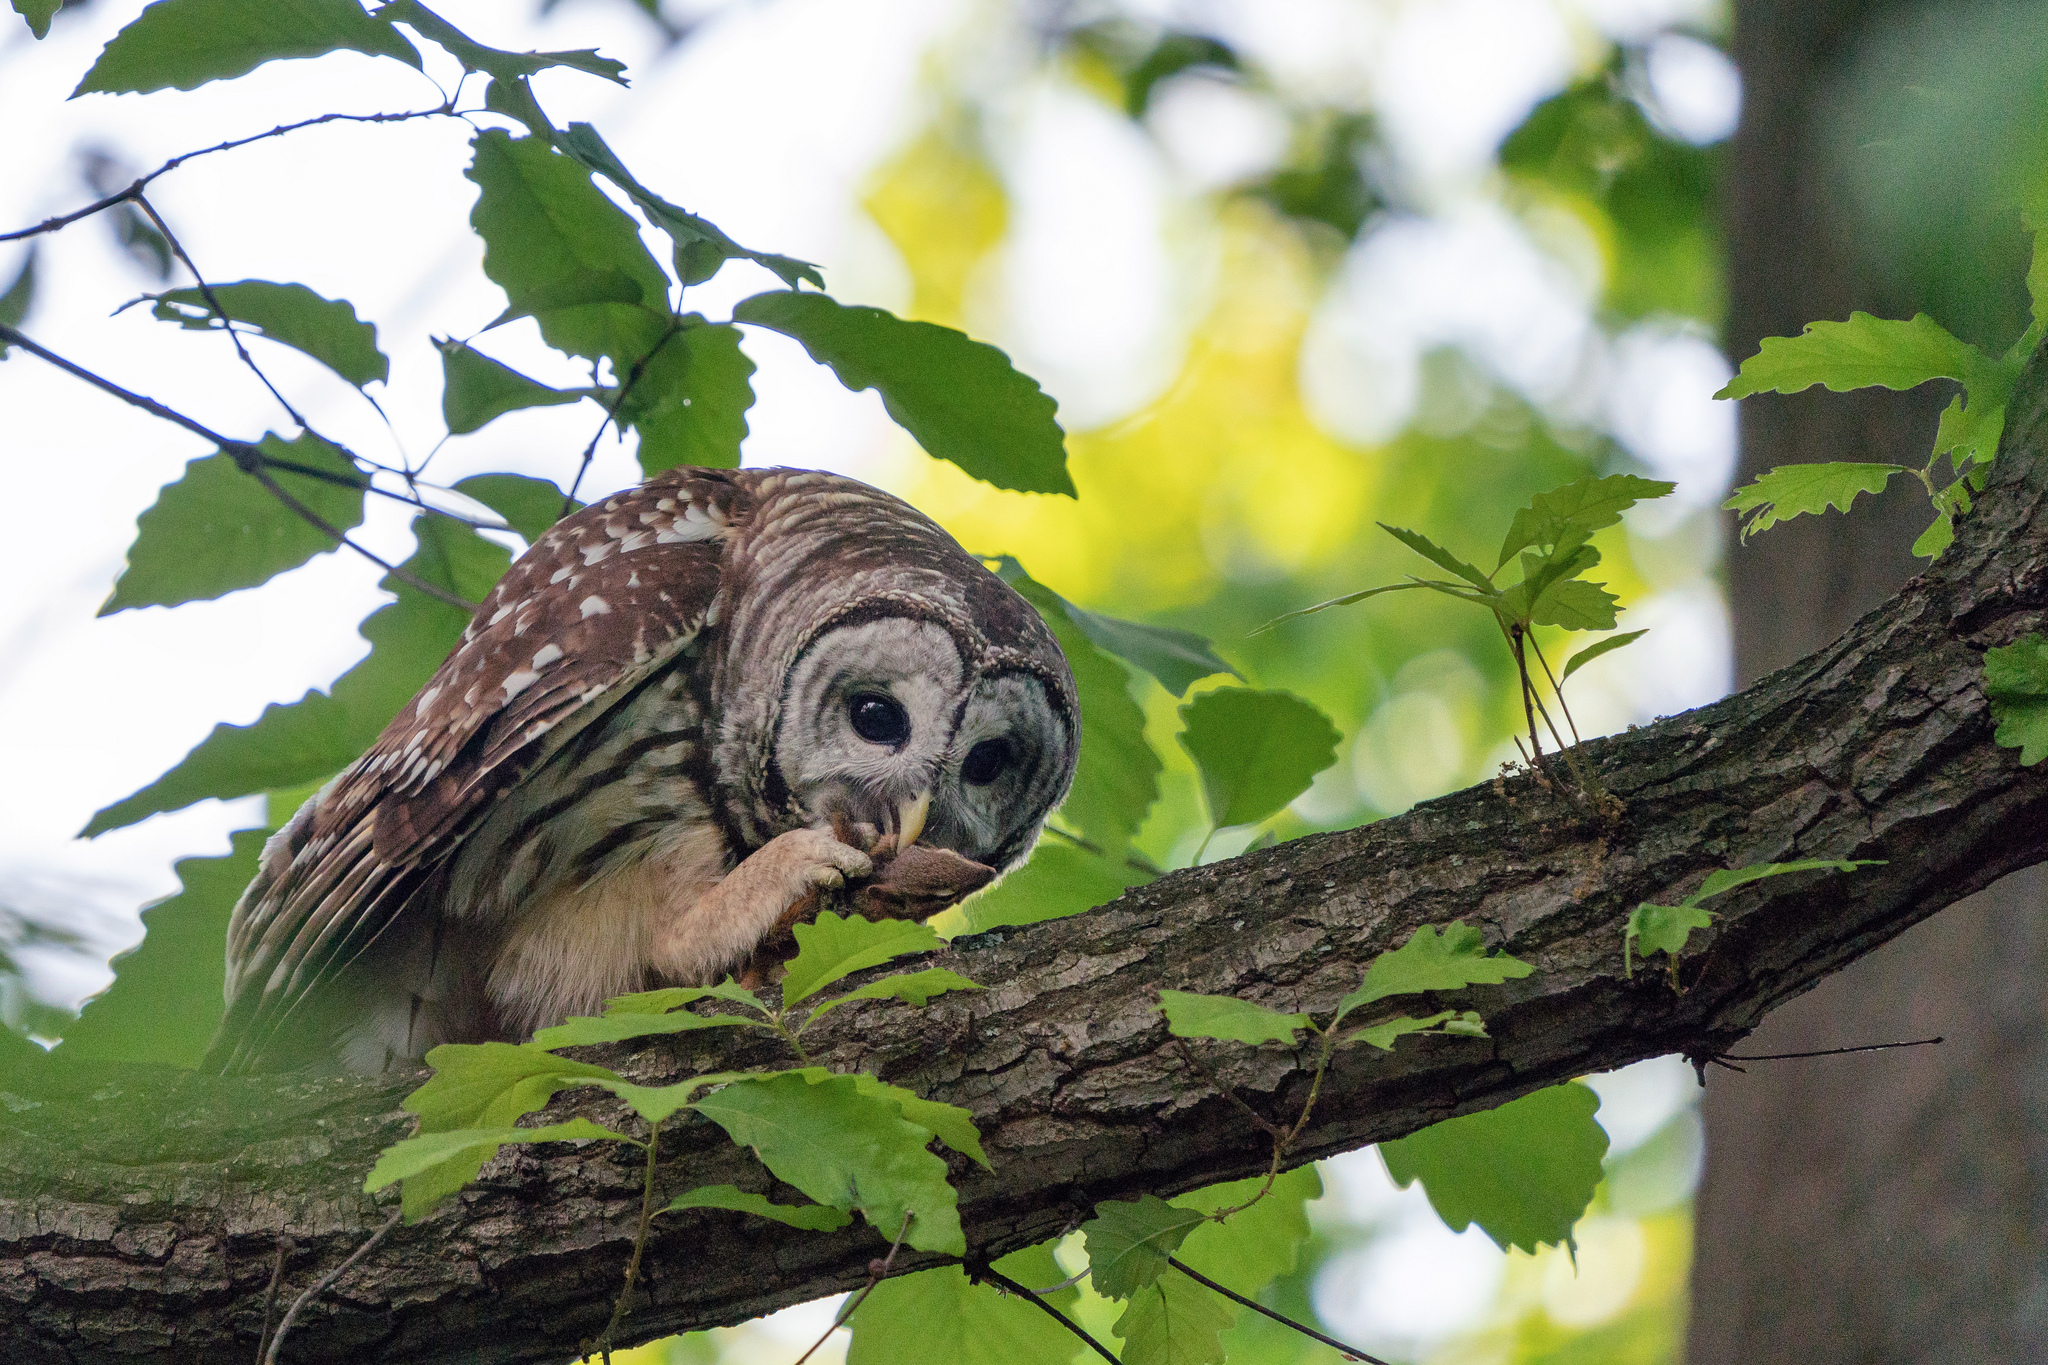 A Barred Owl with a freshly caught chipmunk near the Nature Center in Rock Creek Park, Washington DC